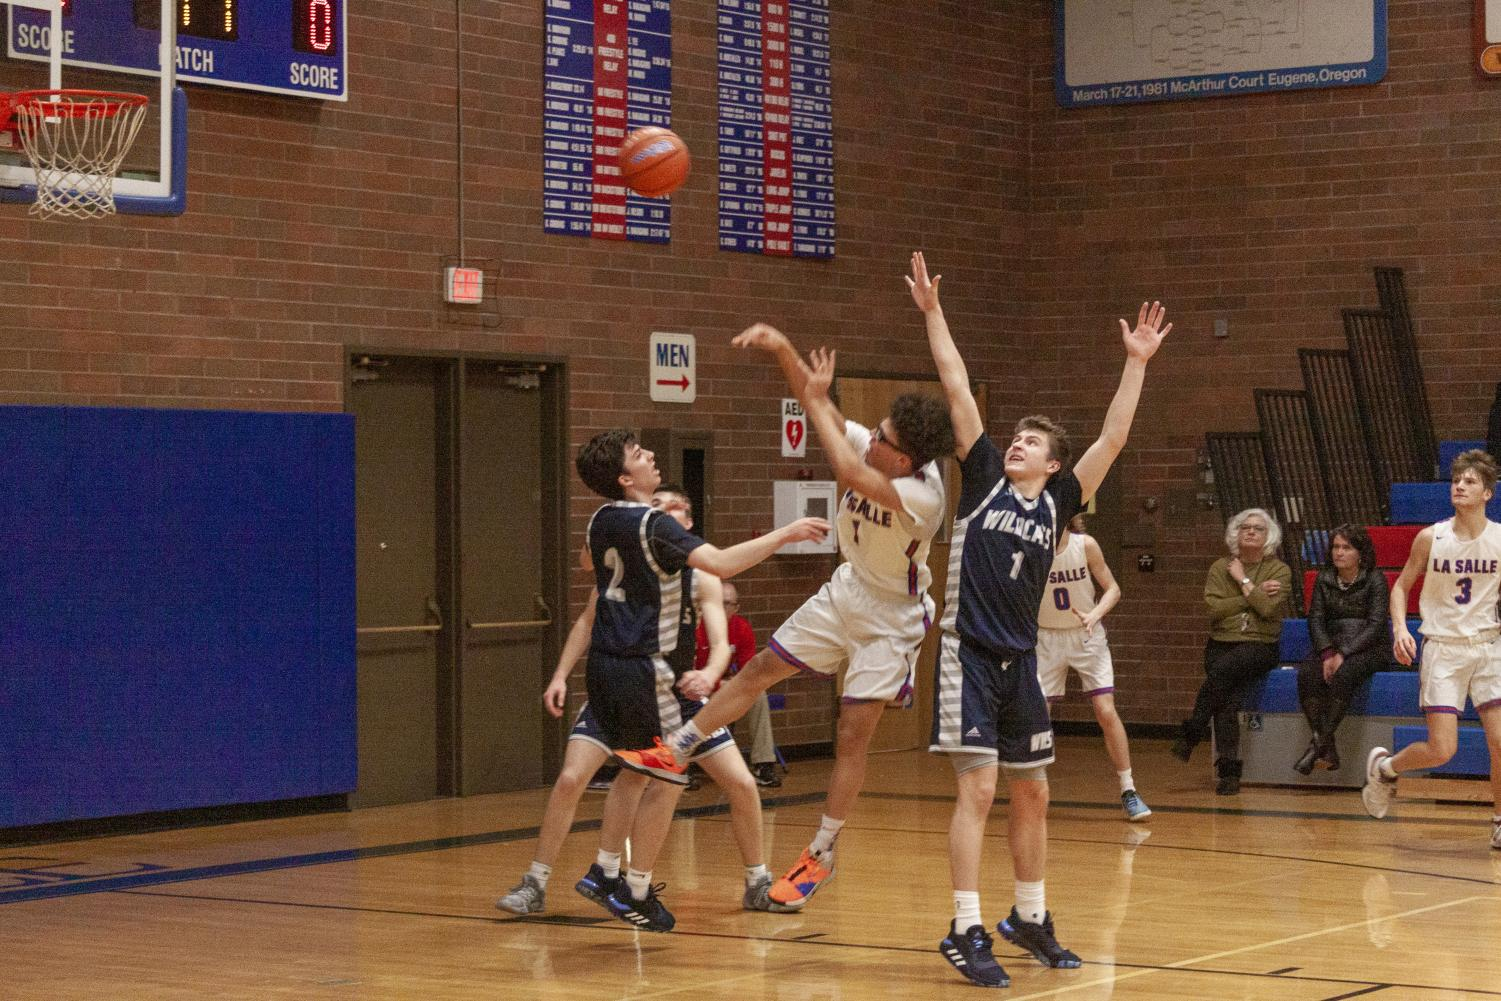 In+an+intense+game+against+%238+Wilsonville%2C+the+Falcons+fell+short+by+3+points+with+a+final+score+of+45-48.